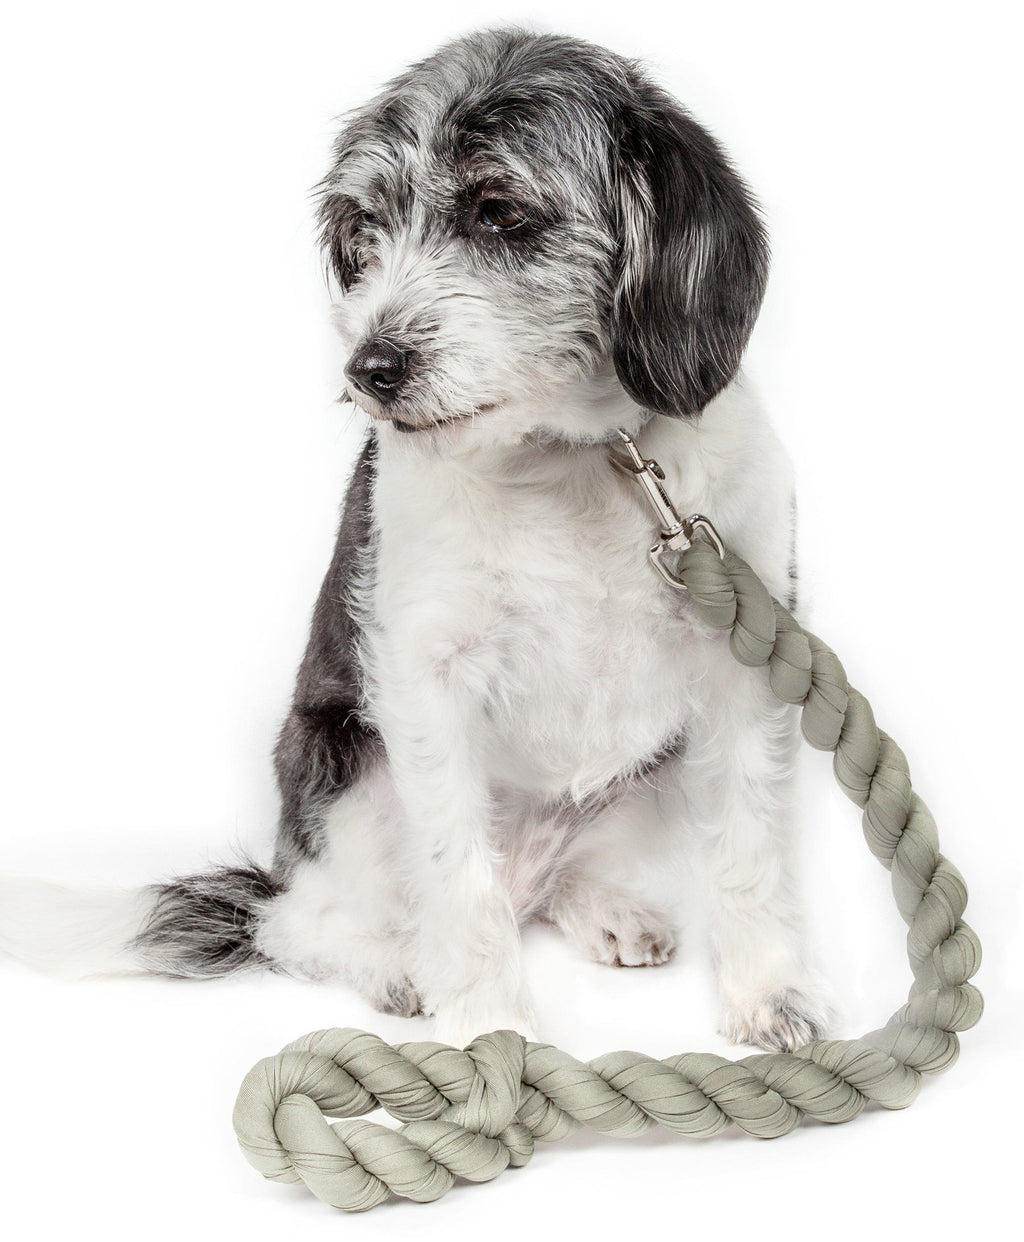 Pet Life ® 'Tough-Tugger' Industrial-Strength Shock Absorption Woven Pet Dog Leash Olive